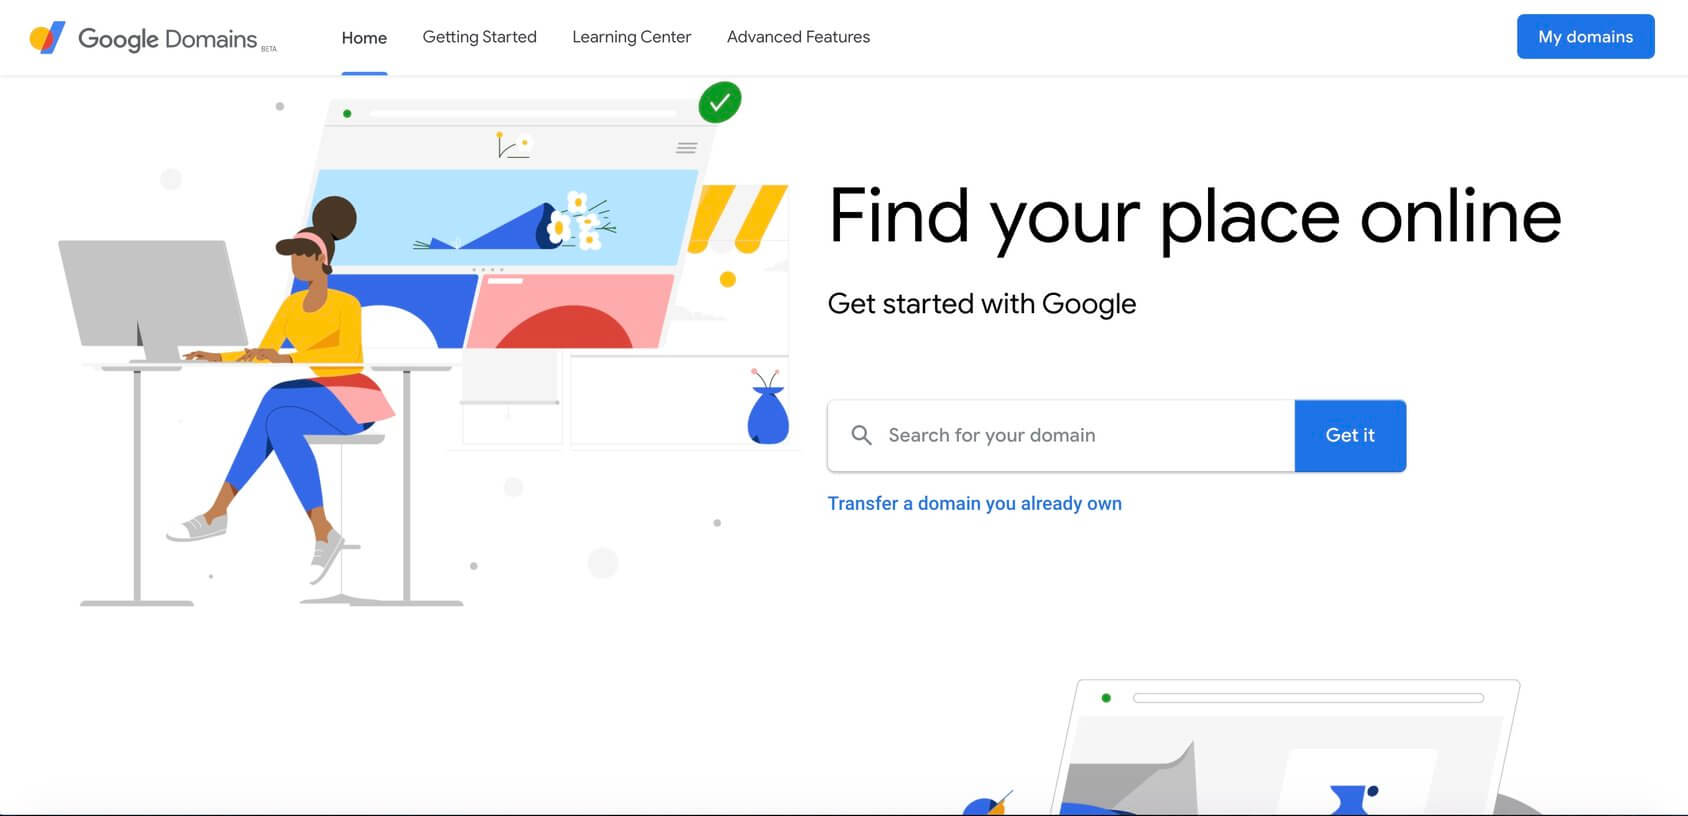 Google Domains homepage